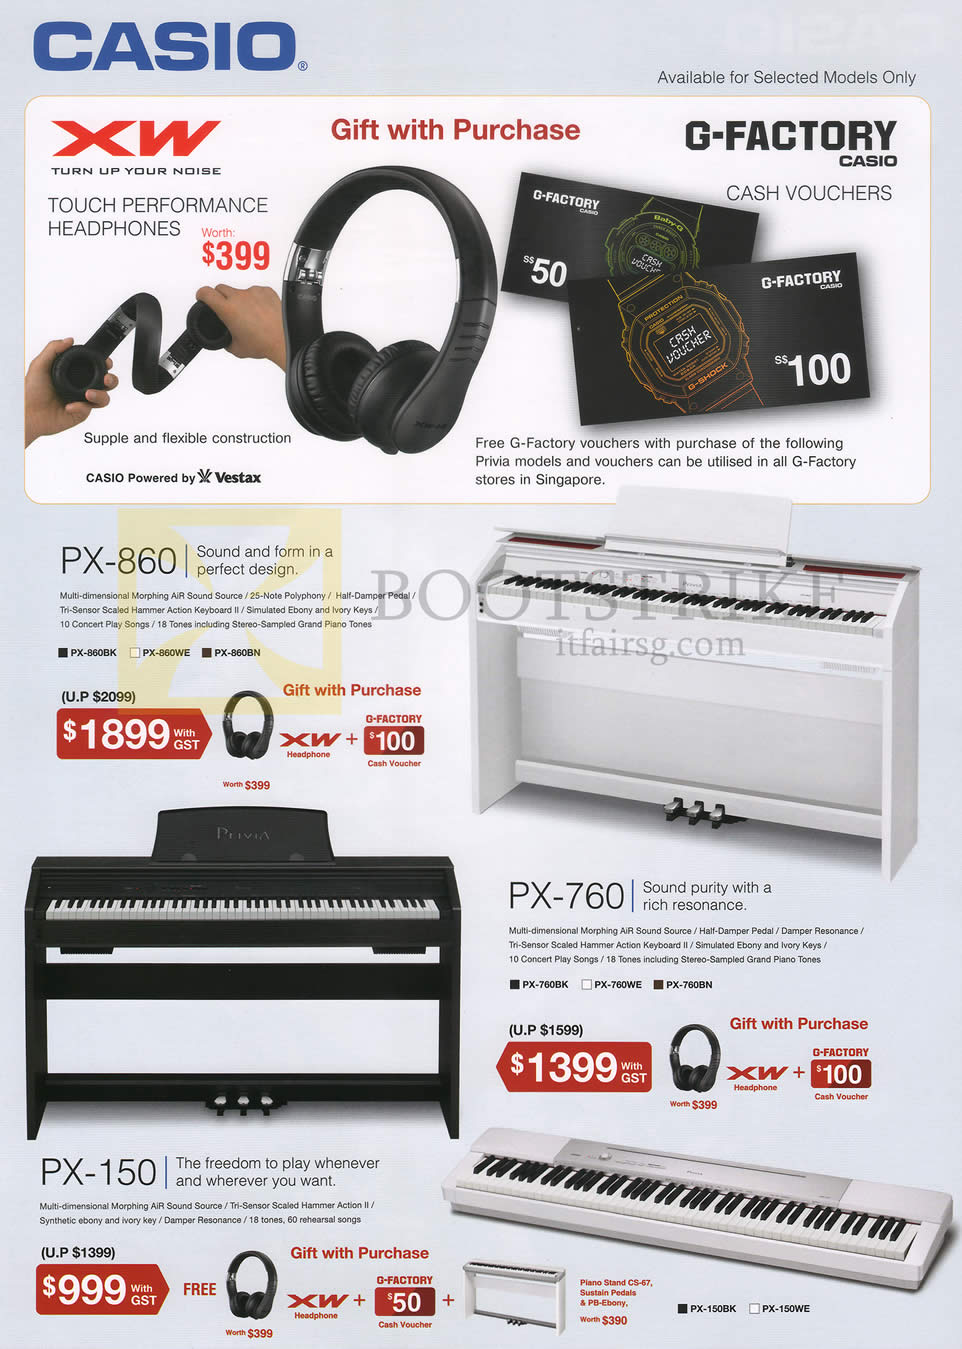 SITEX 2014 price list image brochure of Casio Music Headphones, Pianos, Touch Performance, PX-860, PX-760, PX-150